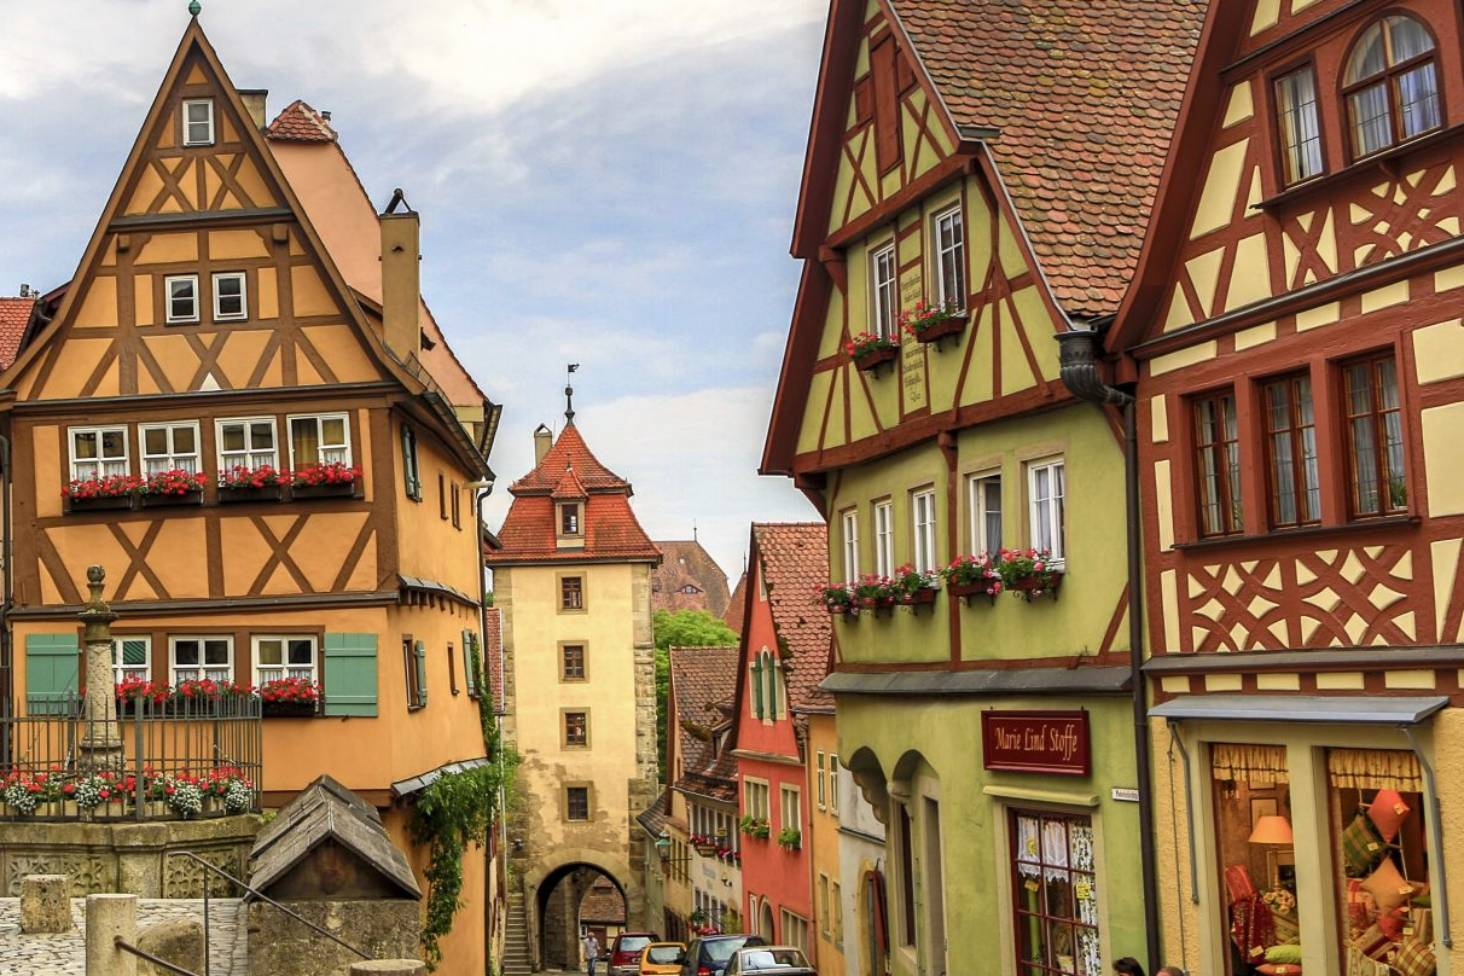 rothenburg germany nightwatchman city tour reveals gritty history